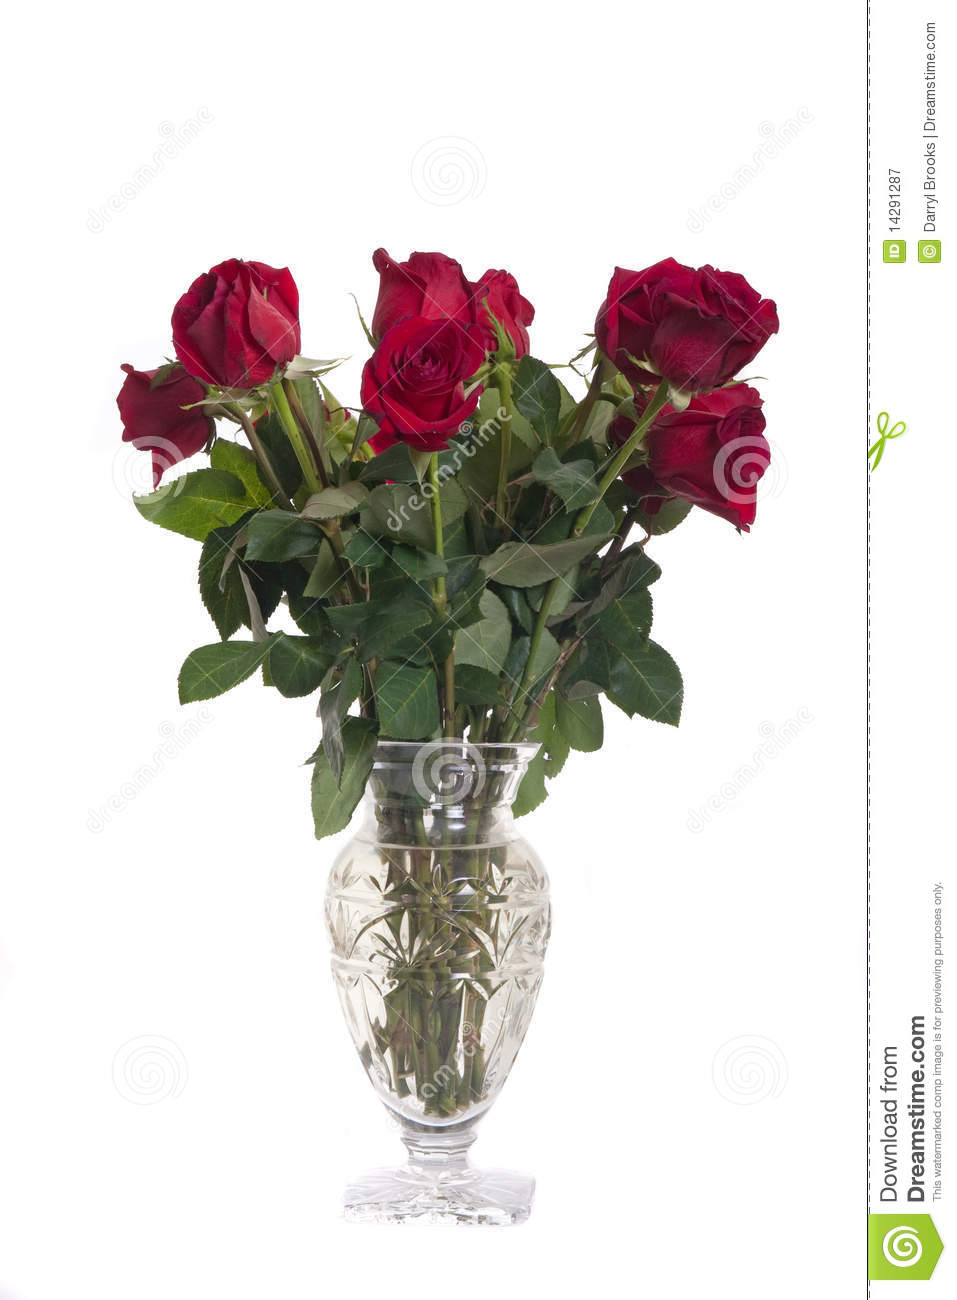 Bouquet Of Red Roses In A Glass Vase Stock Image - Image ...